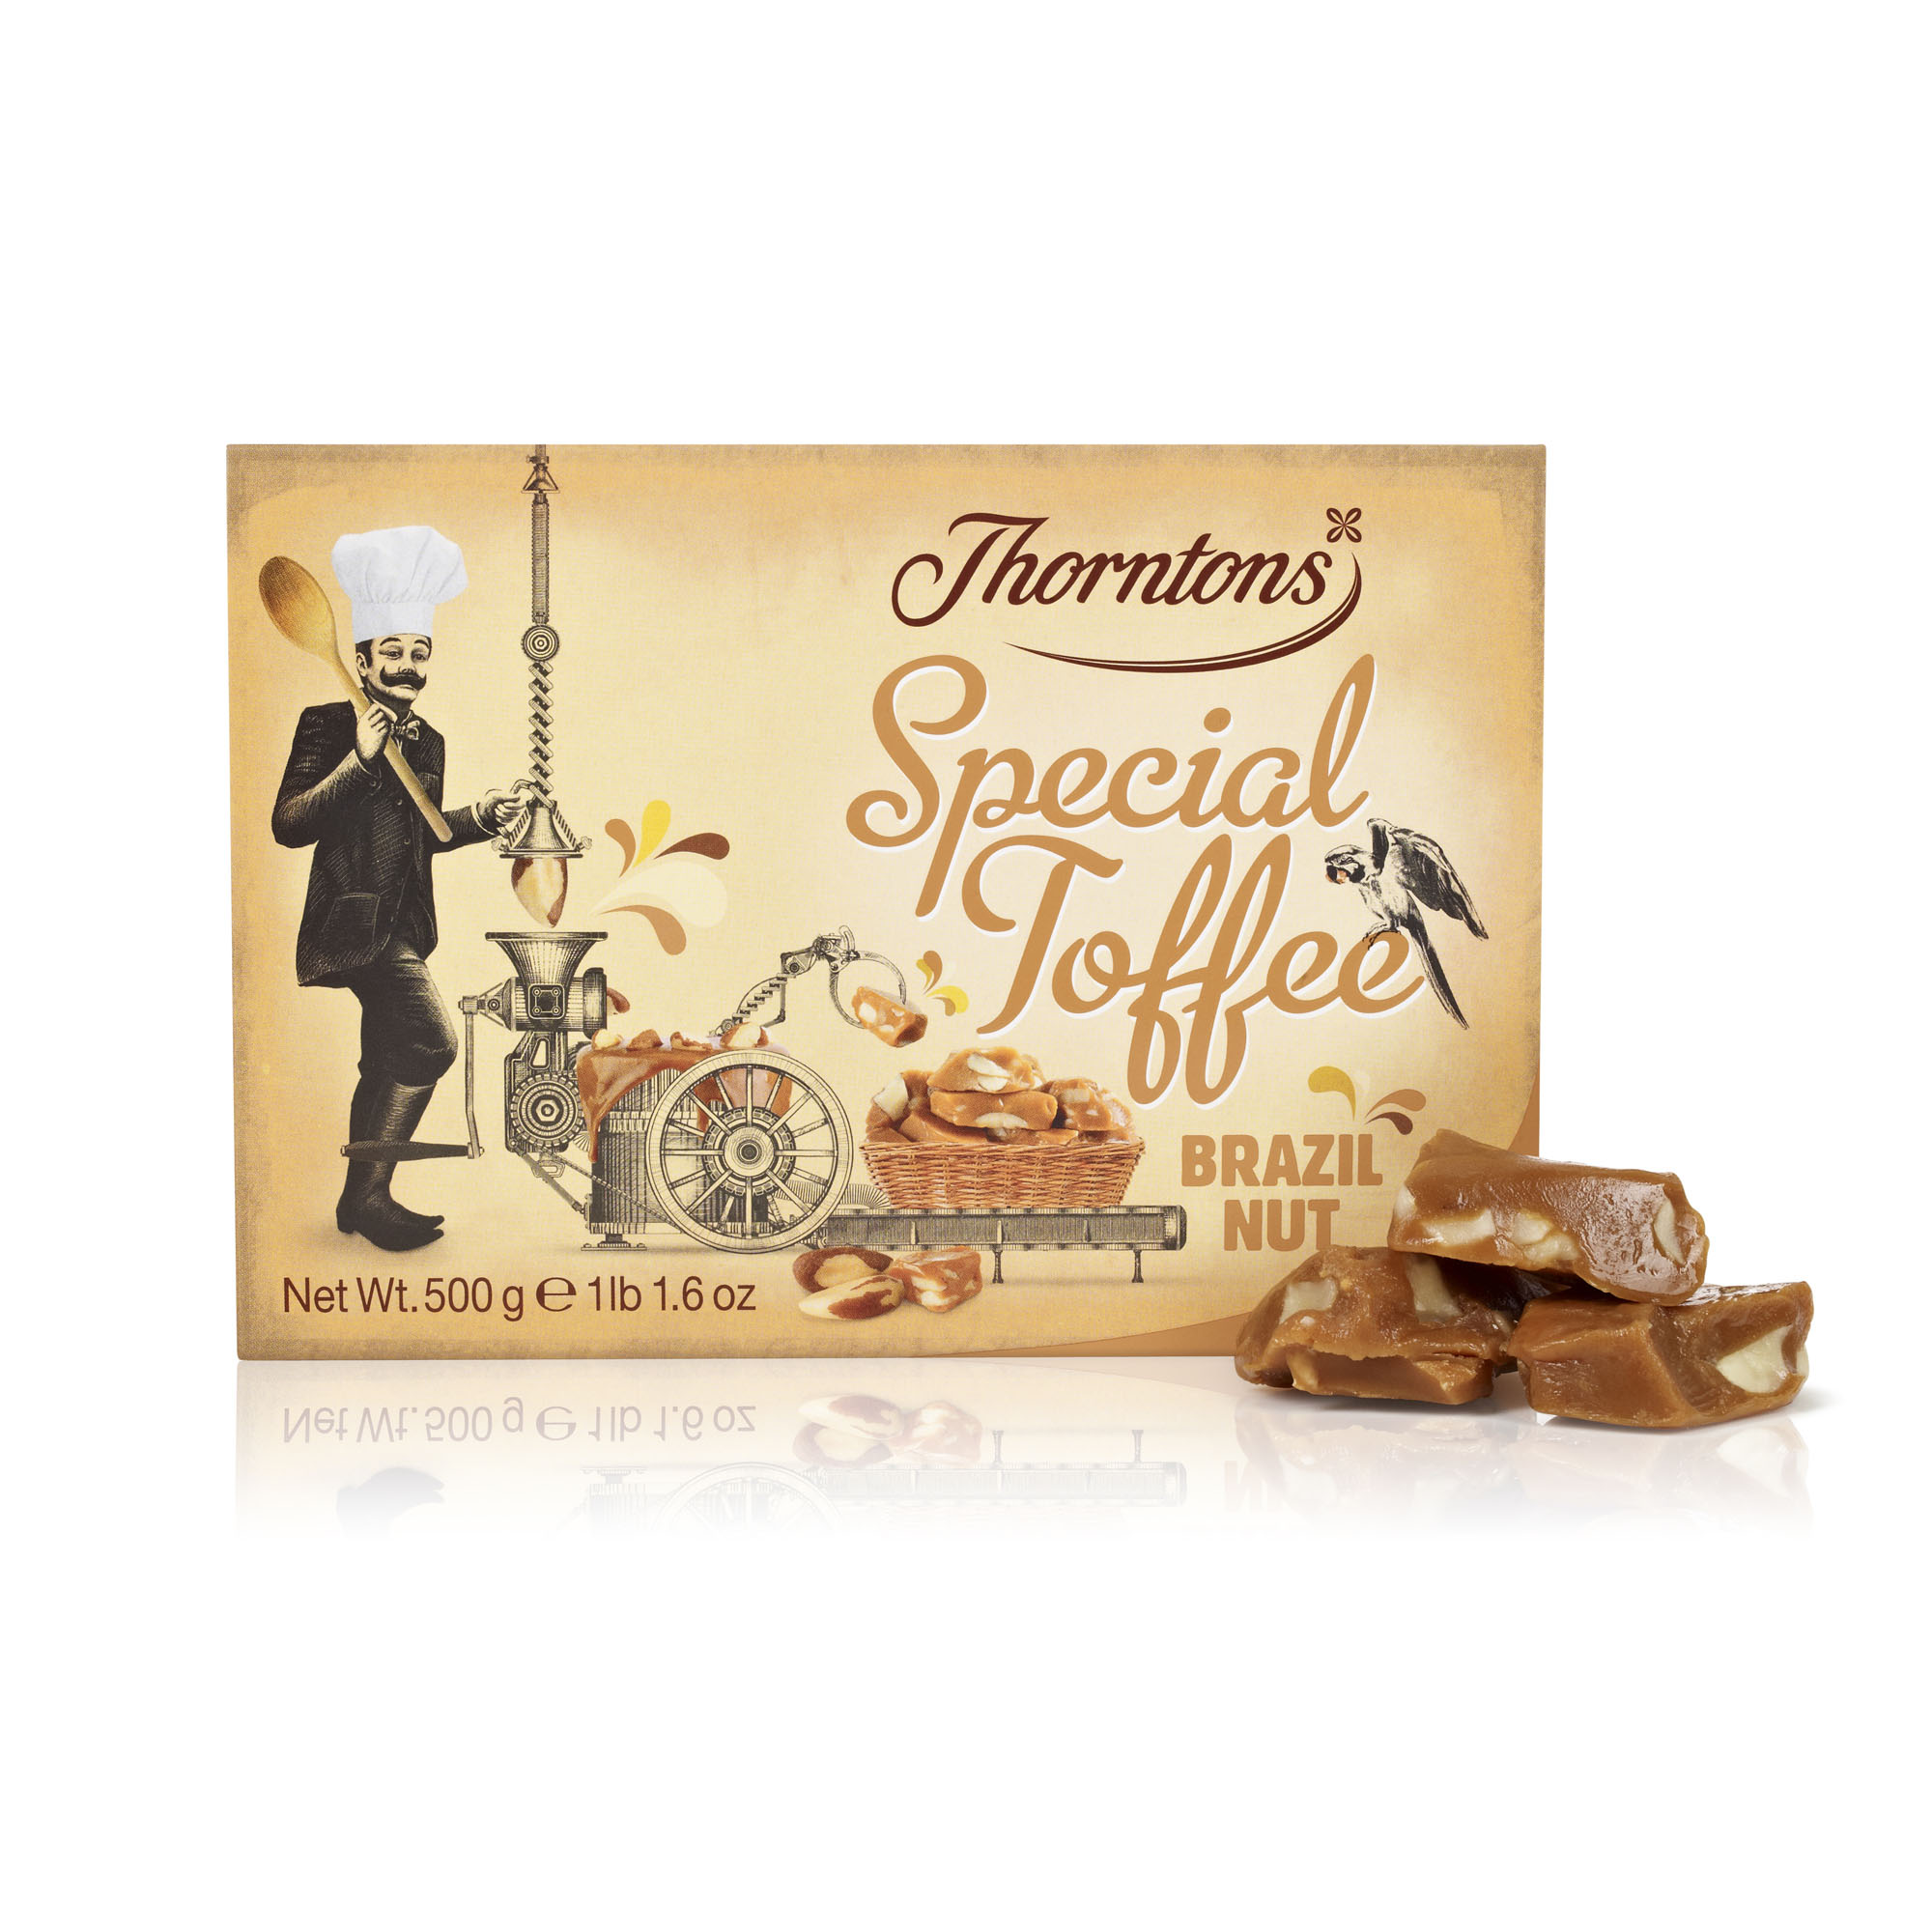 Recently Expired Thorntons Vouchers & Deals